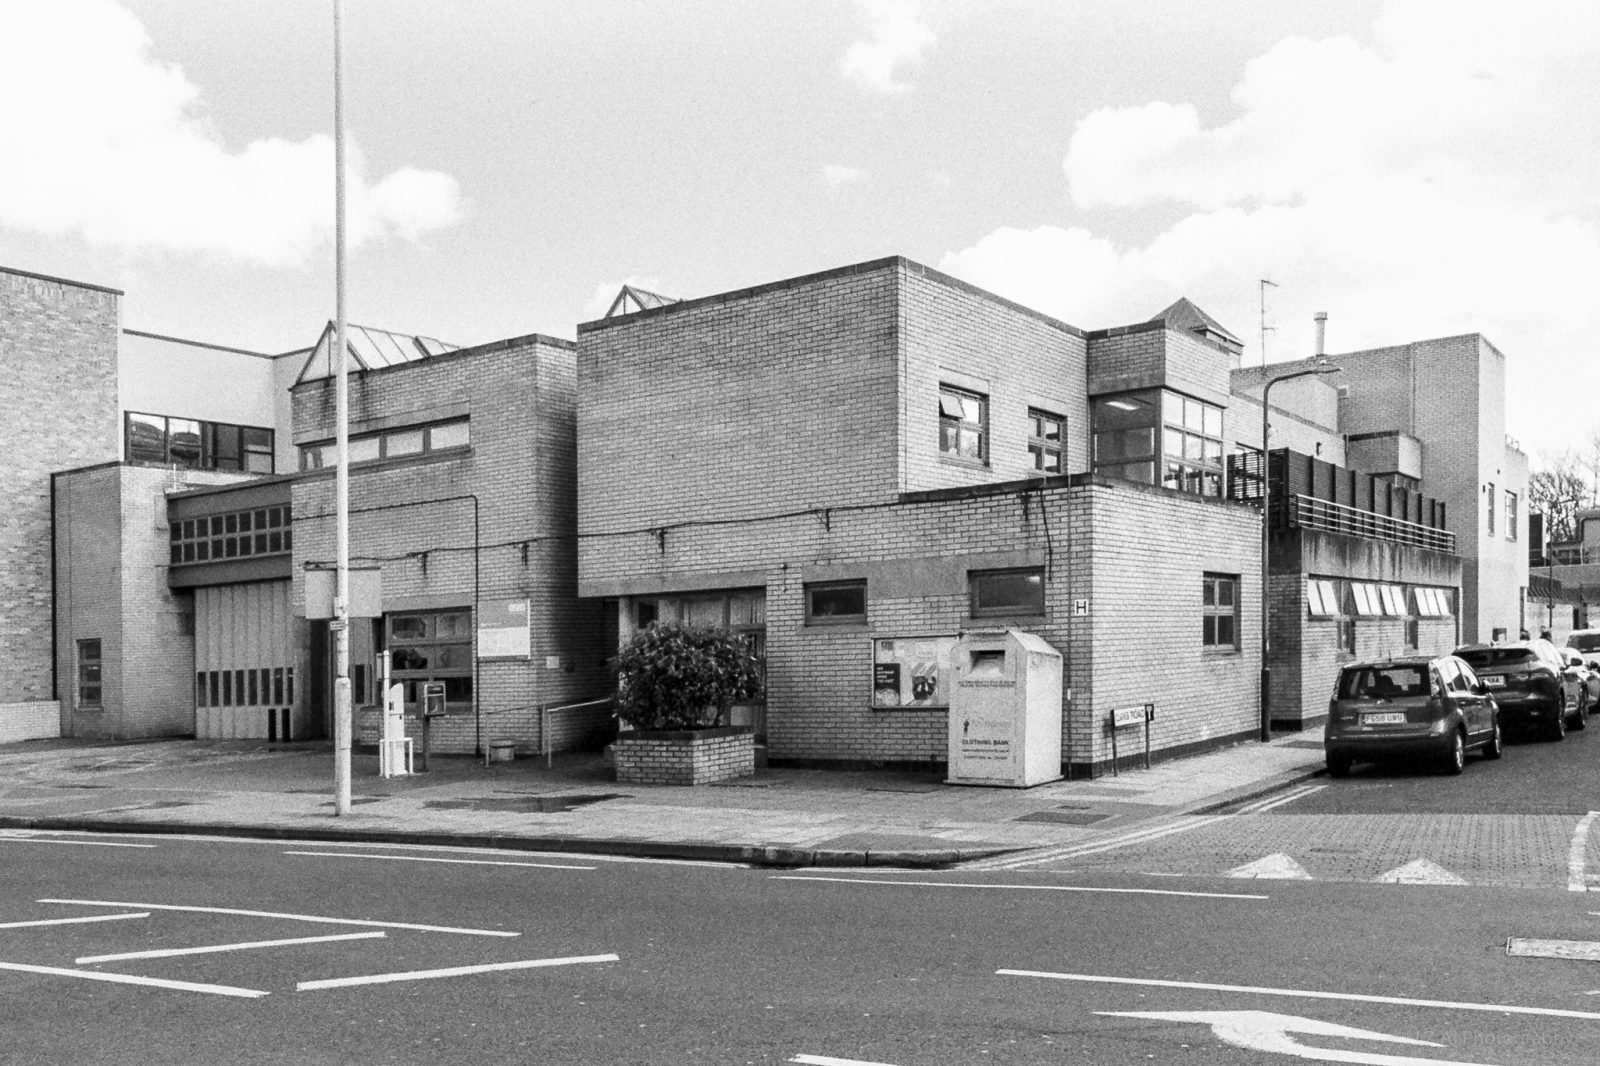 Ilford Fire Station